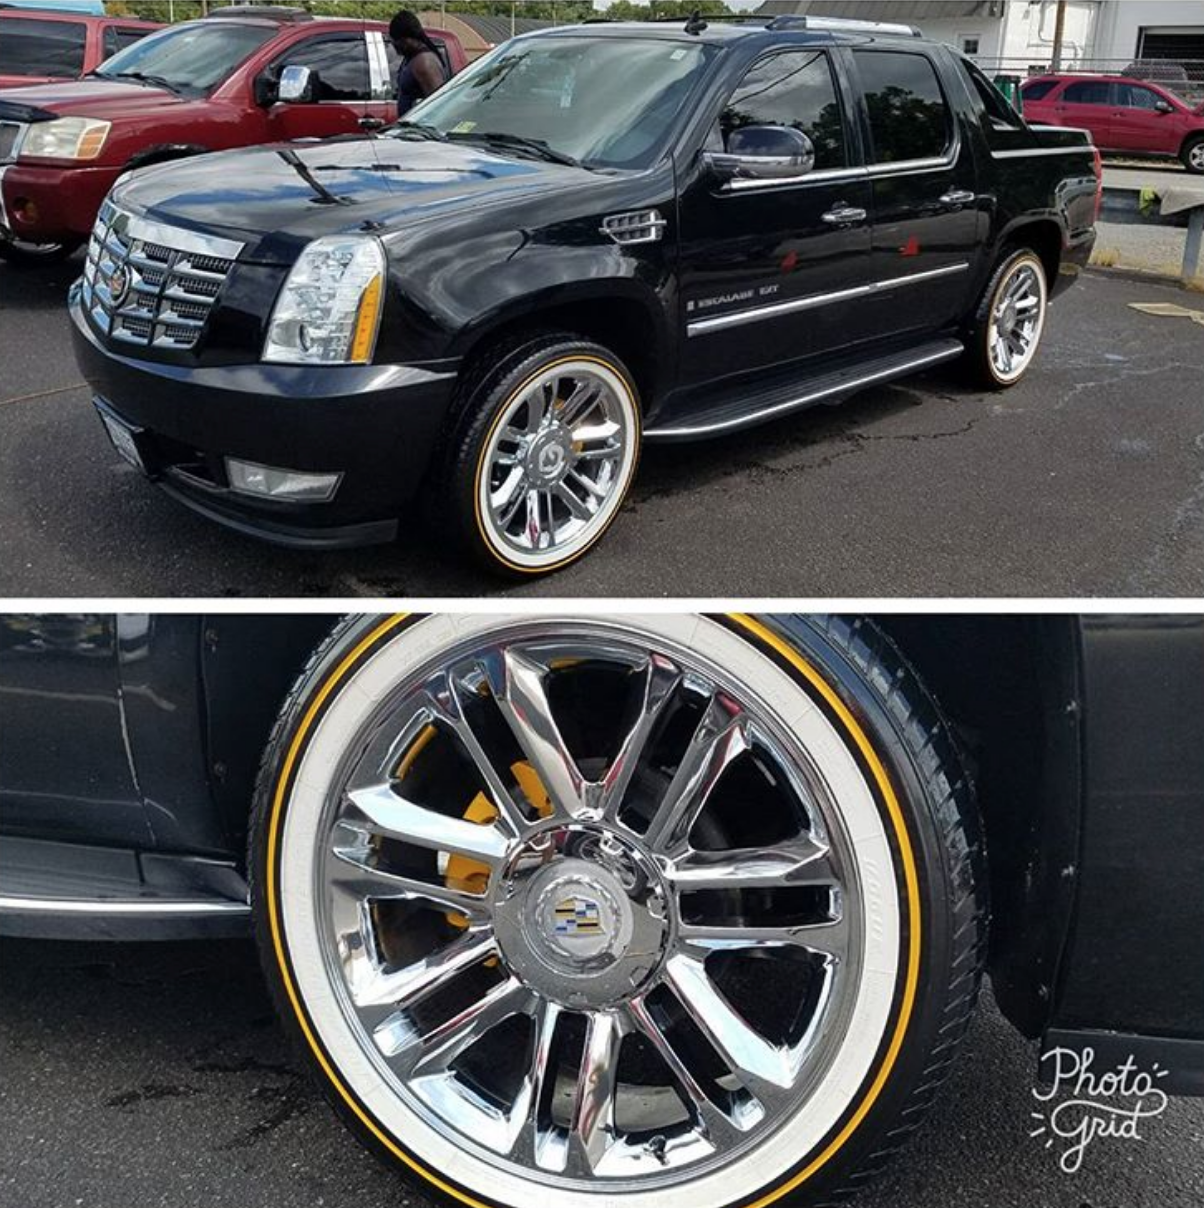 exclusively gallery butler wheels from with beyern tires multi vogue for cadillac xts extra large